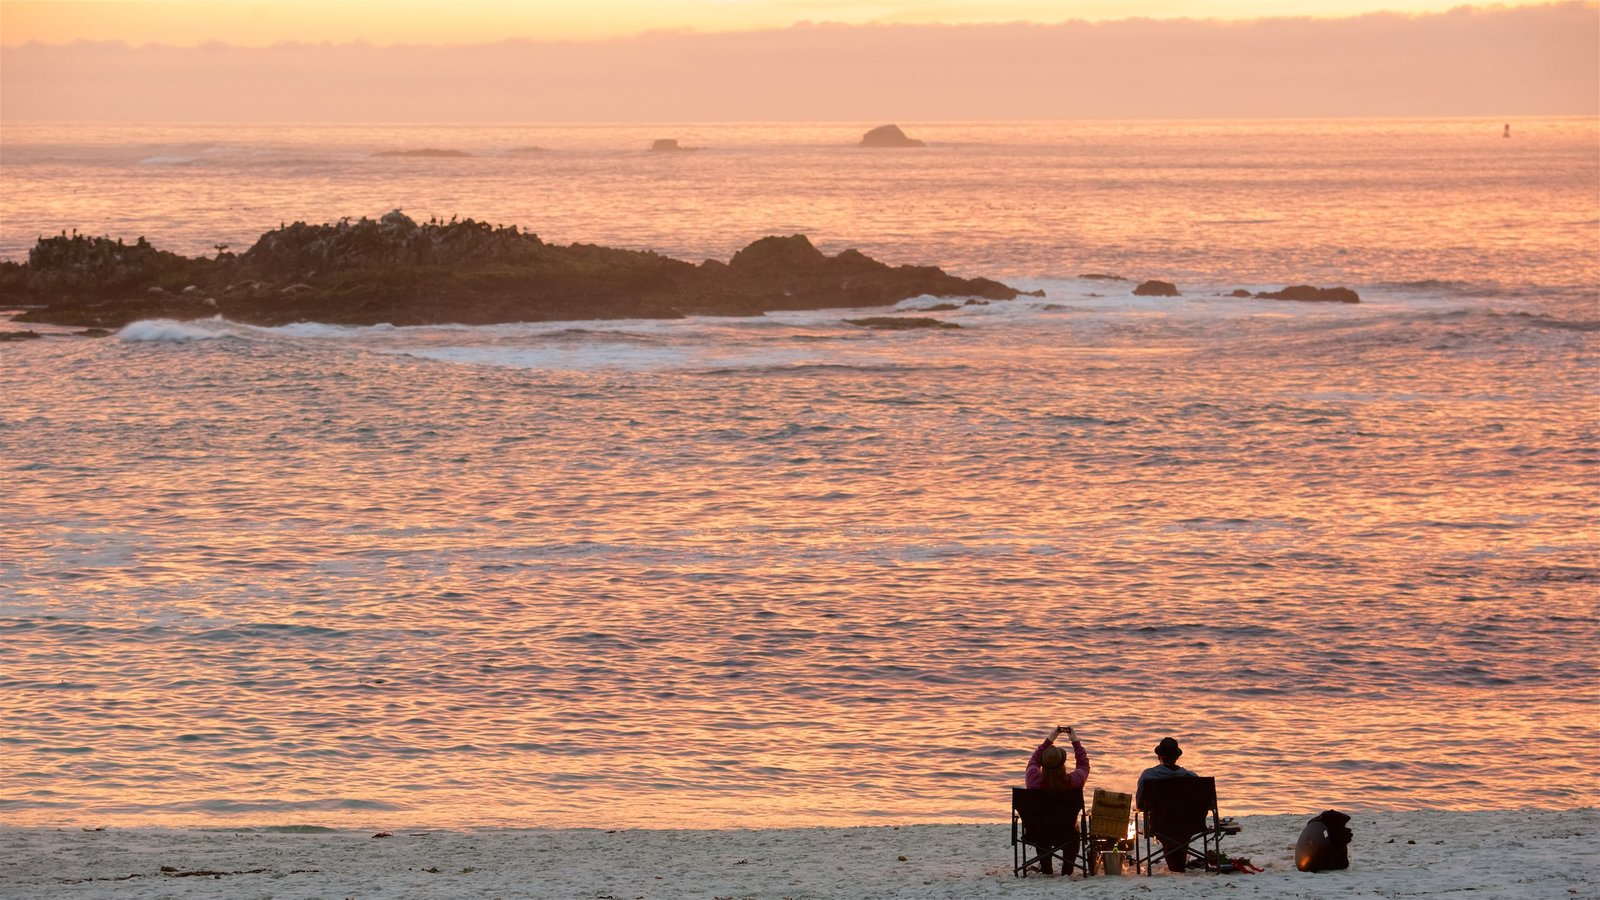 17-Mile Drive showing a sandy beach and a sunset as well as a couple